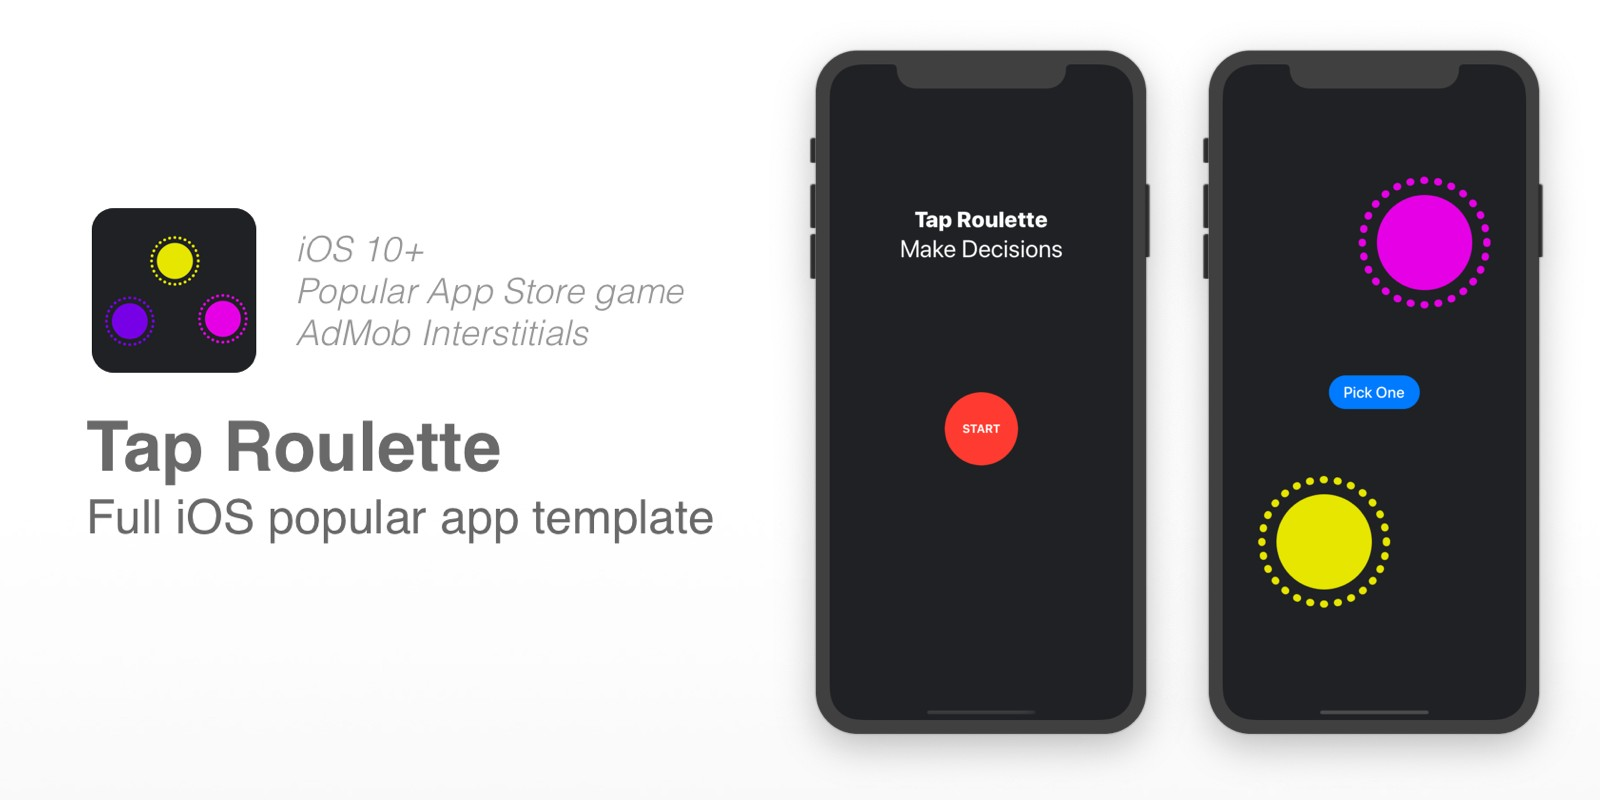 Tap Roulette - iOS Game Template